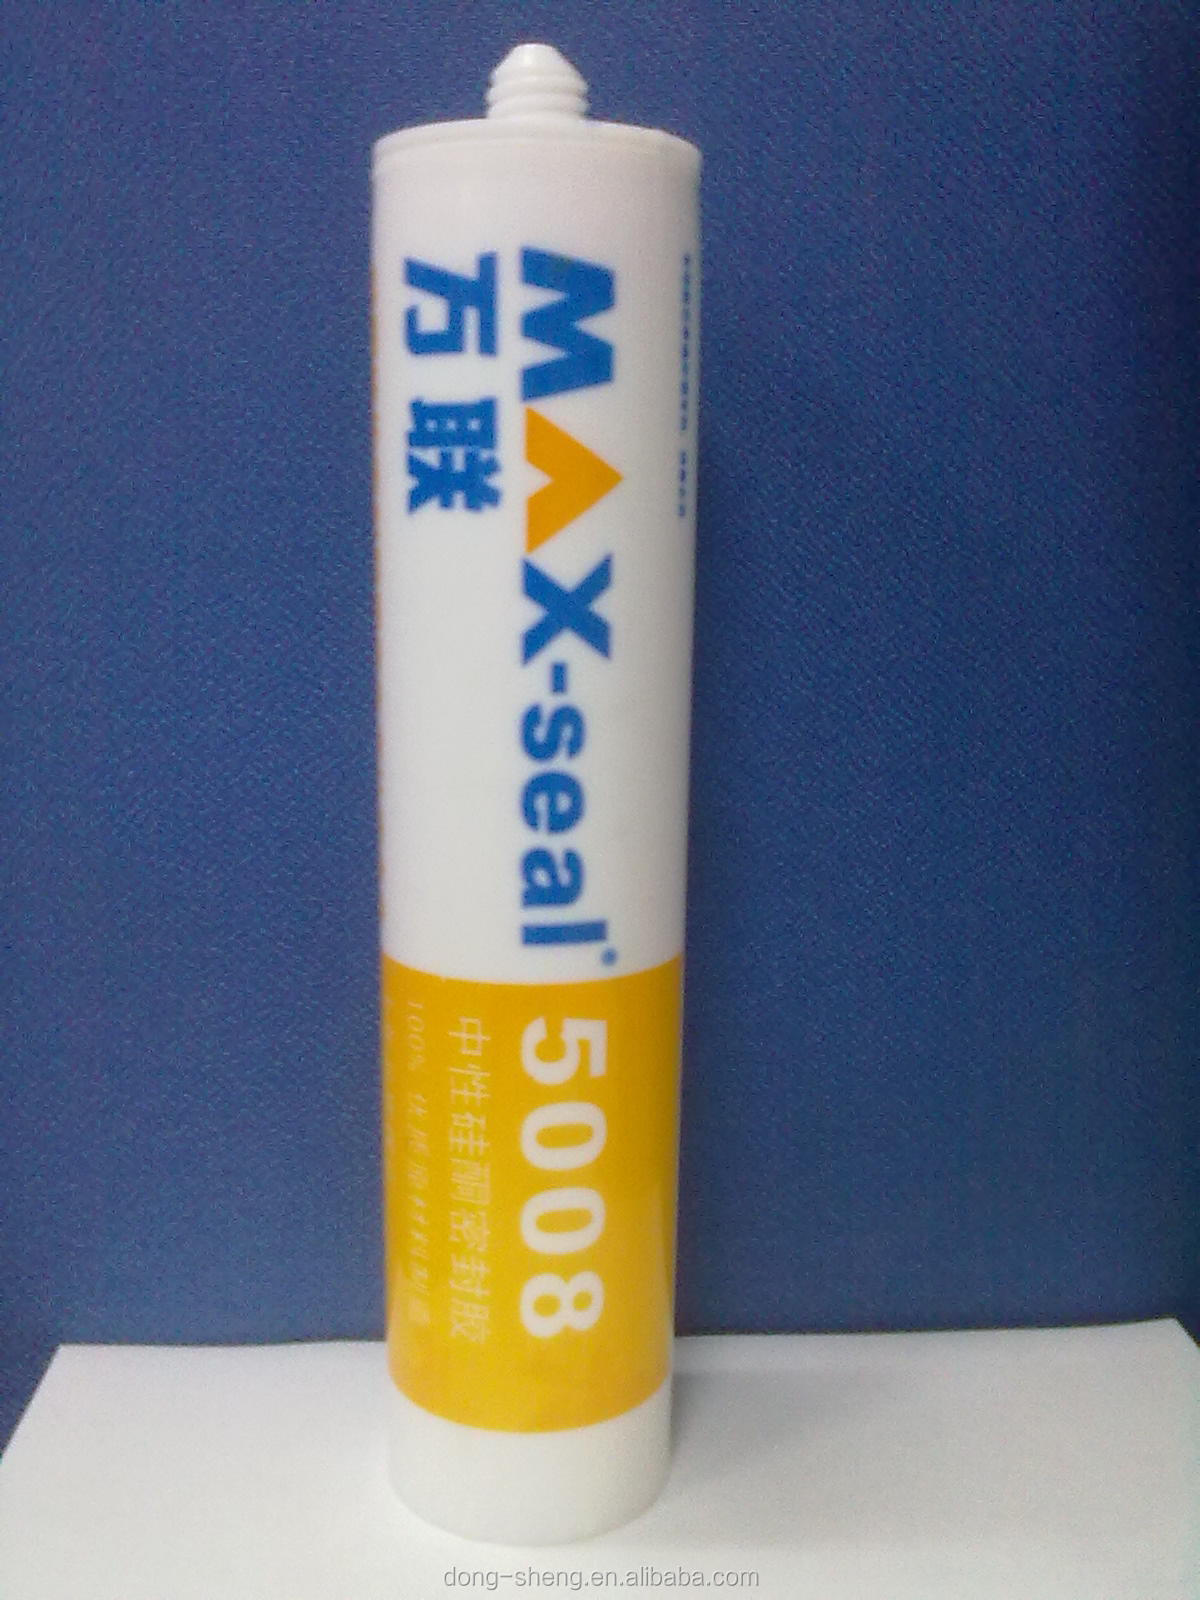 Max-seal 5008 Neutral Cure Window Door and Internal Decoration silicone sealant